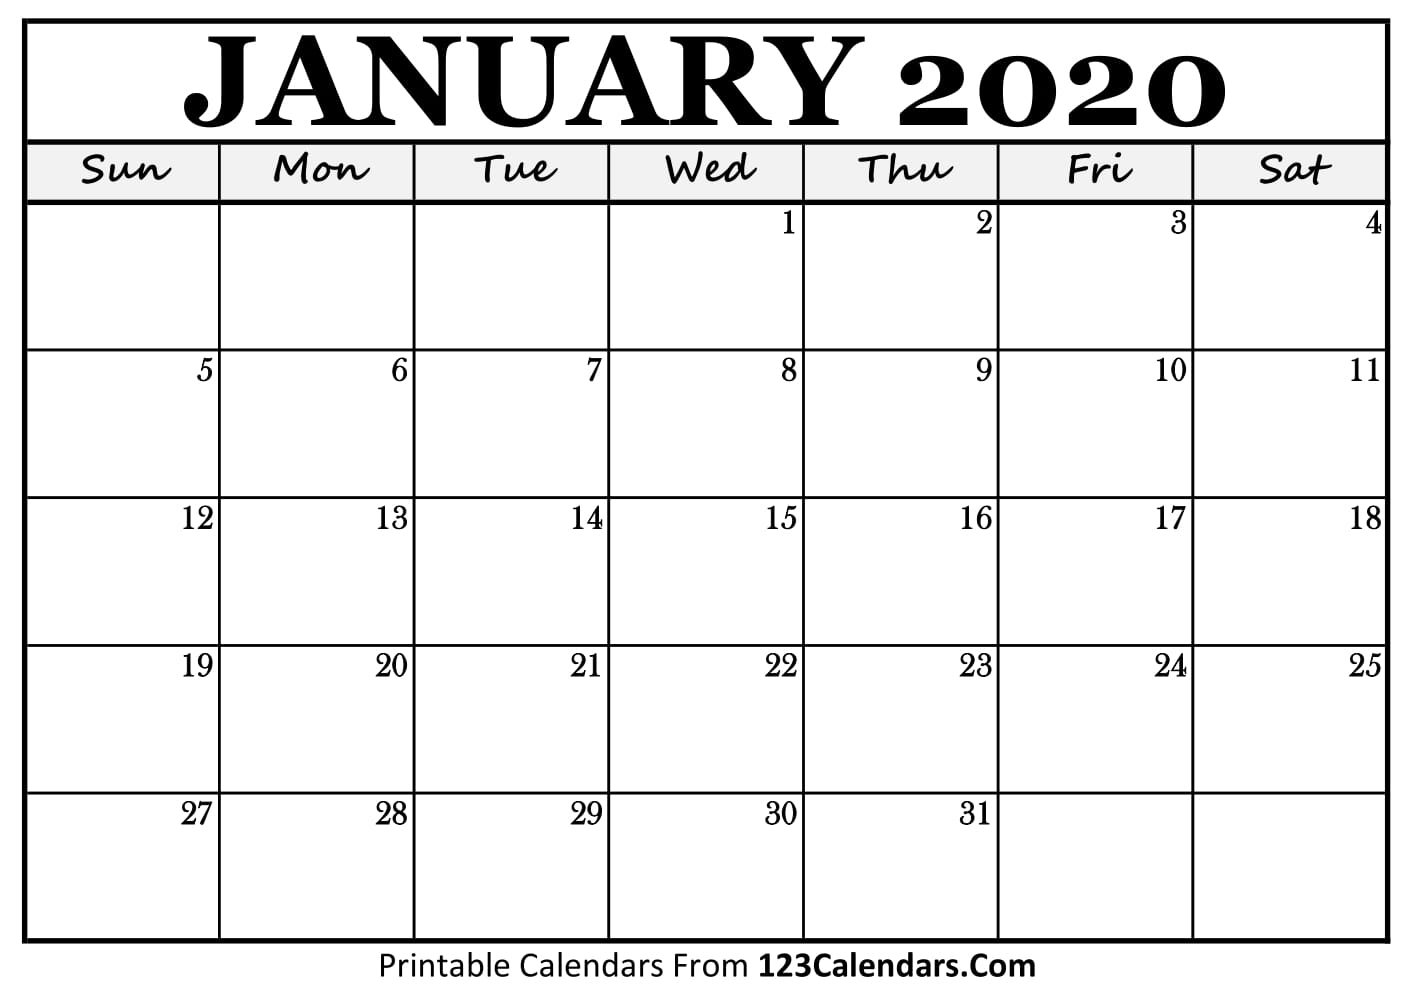 January 2020 Printable Calendar | 123Calendars A Calendar For January 2019